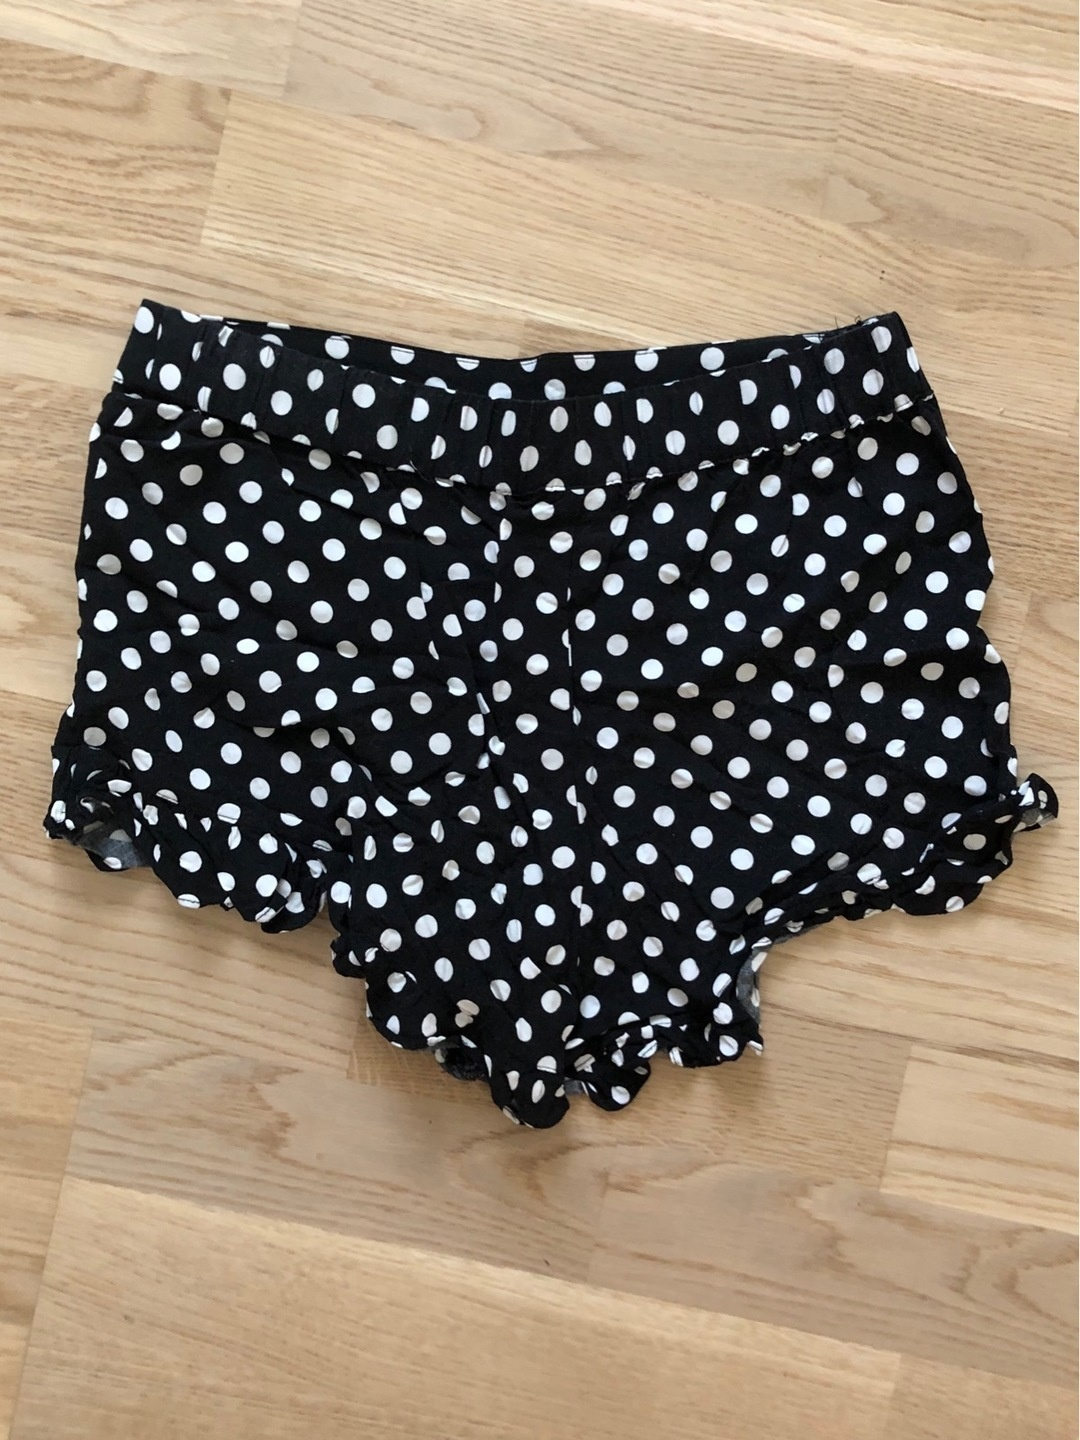 Damers shorts - GINA TRICOT photo 2